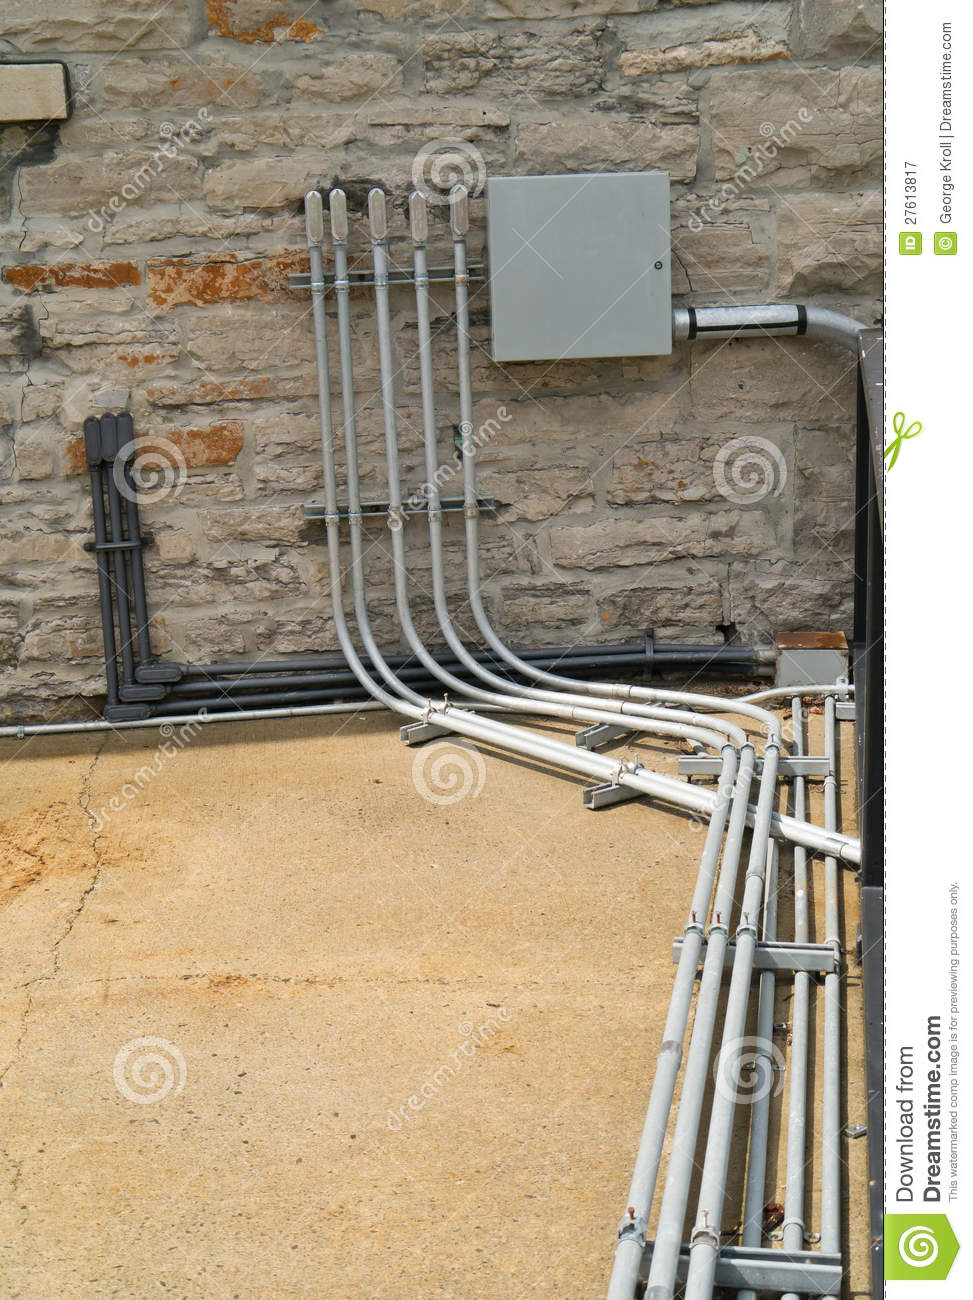 Electrical Conduit And Panel Royalty Free Stock